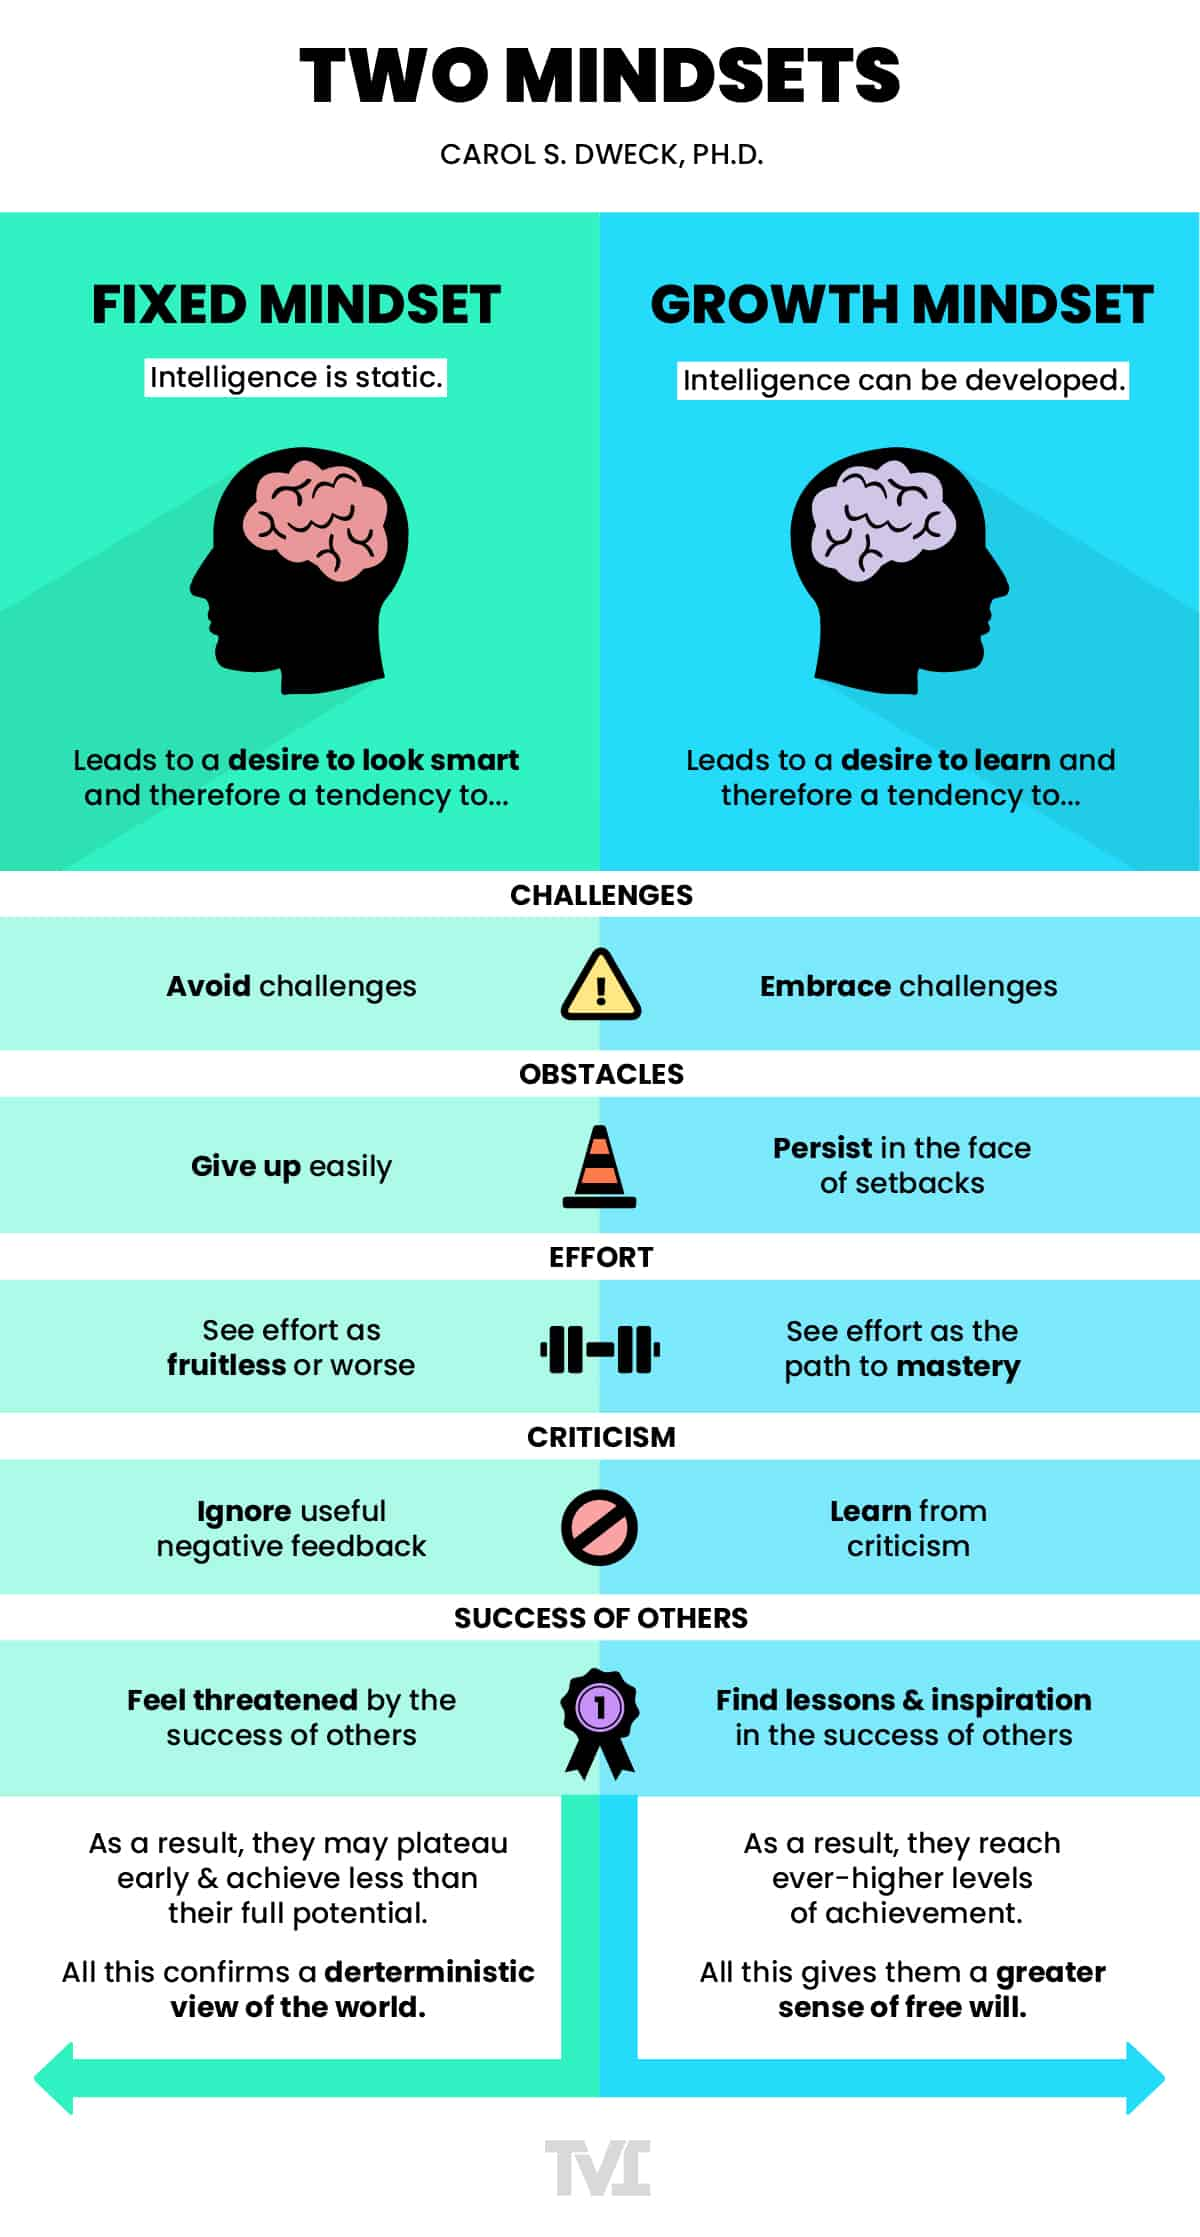 Image showing the difference between a fixed mindset and a growth mindset.